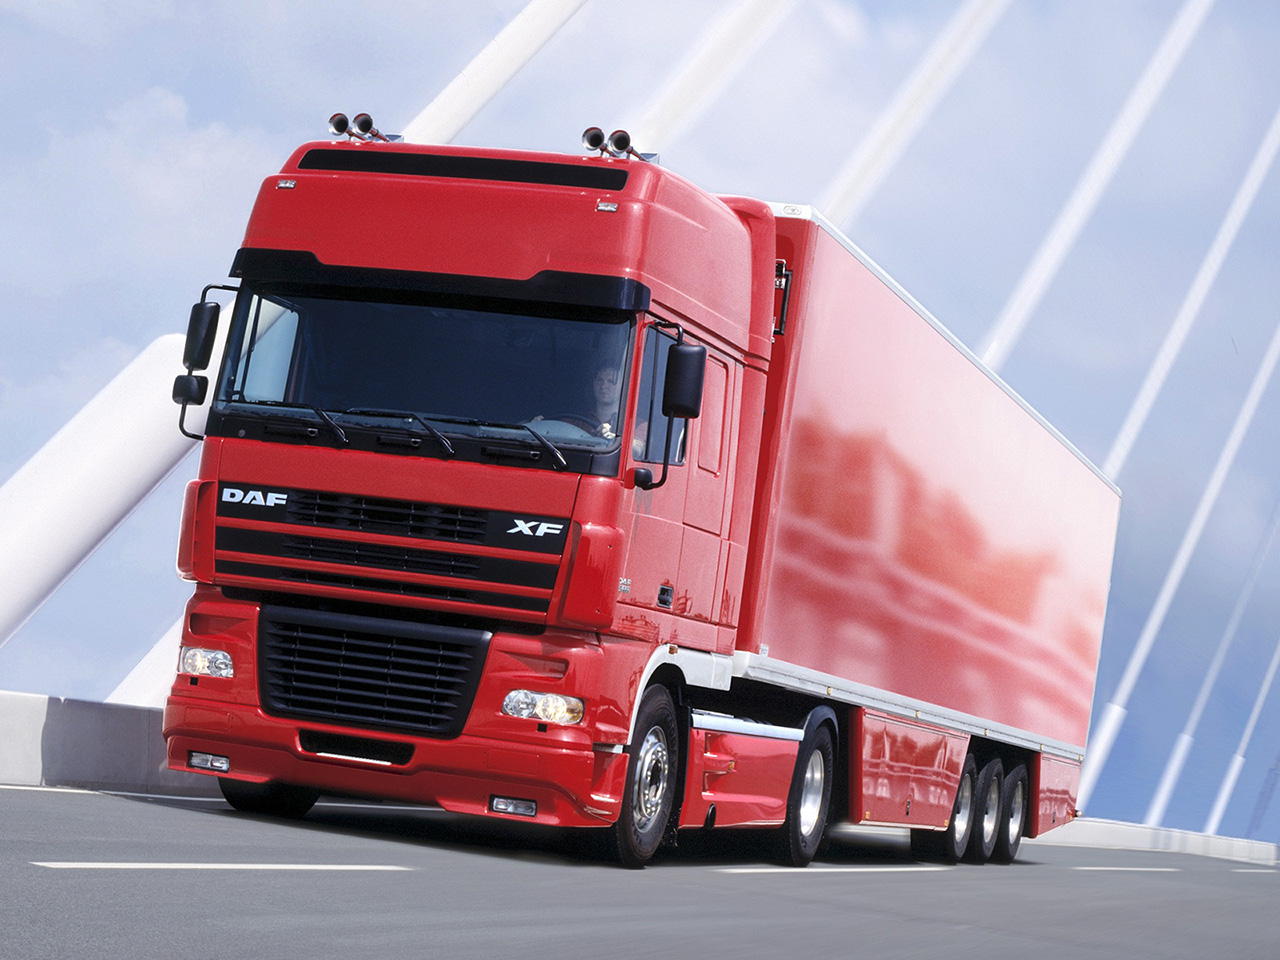 DAF Truck Wallpapers 1280x960